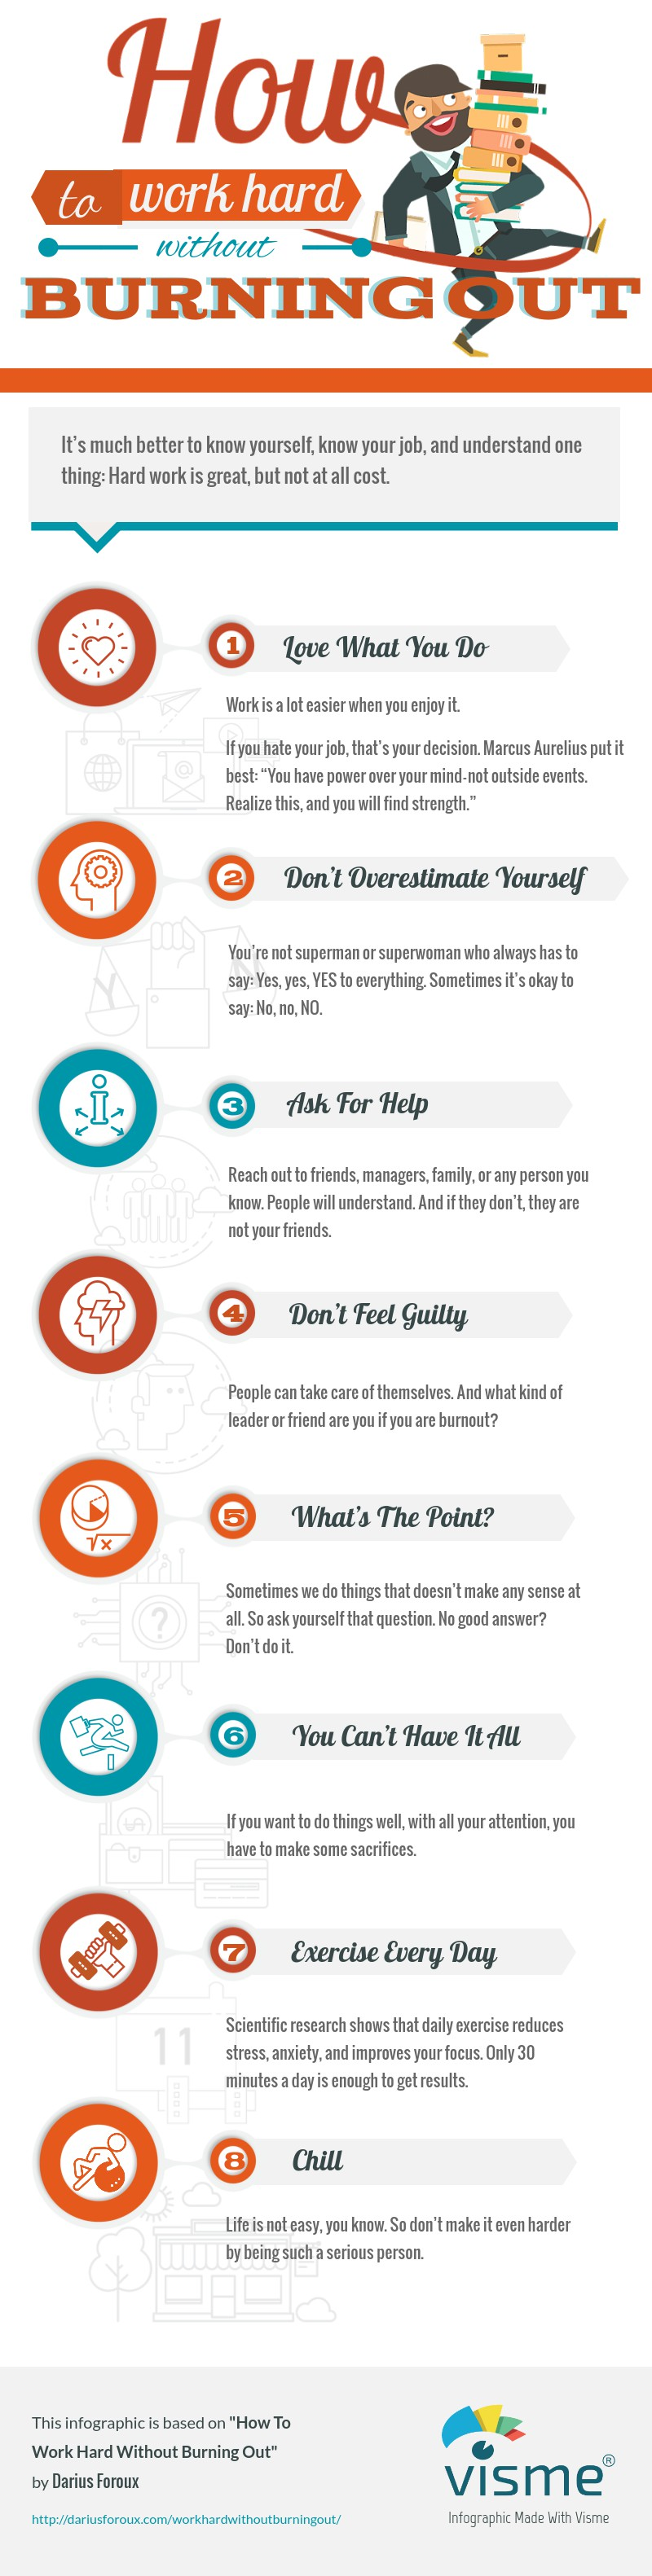 How to work hard without burning out infographic